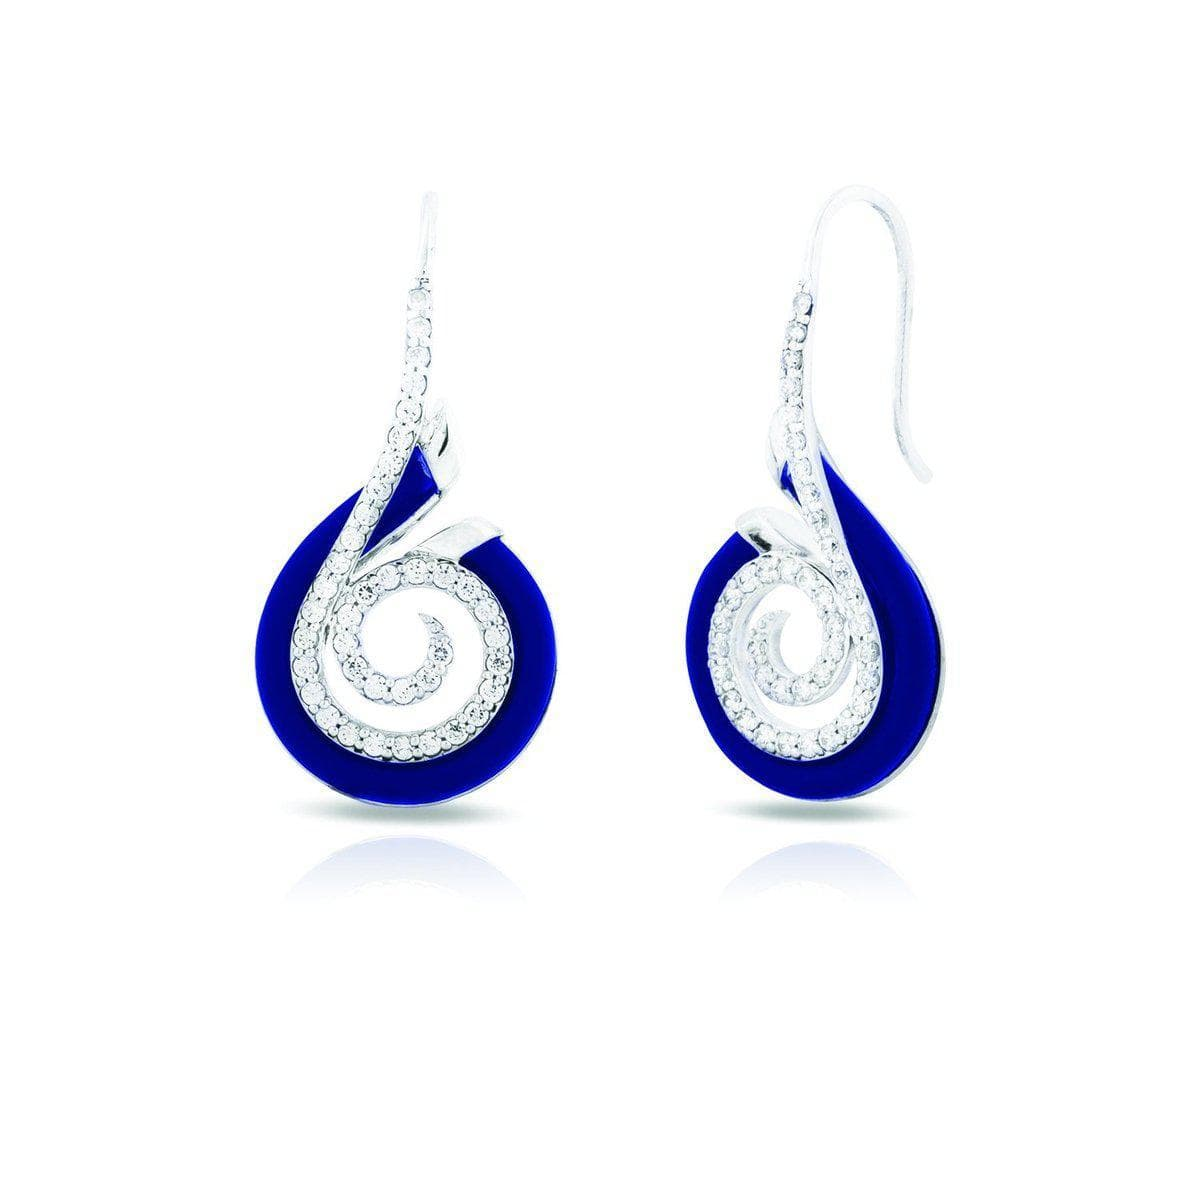 Oceana Blue Earrings-Belle Etoile-Renee Taylor Gallery